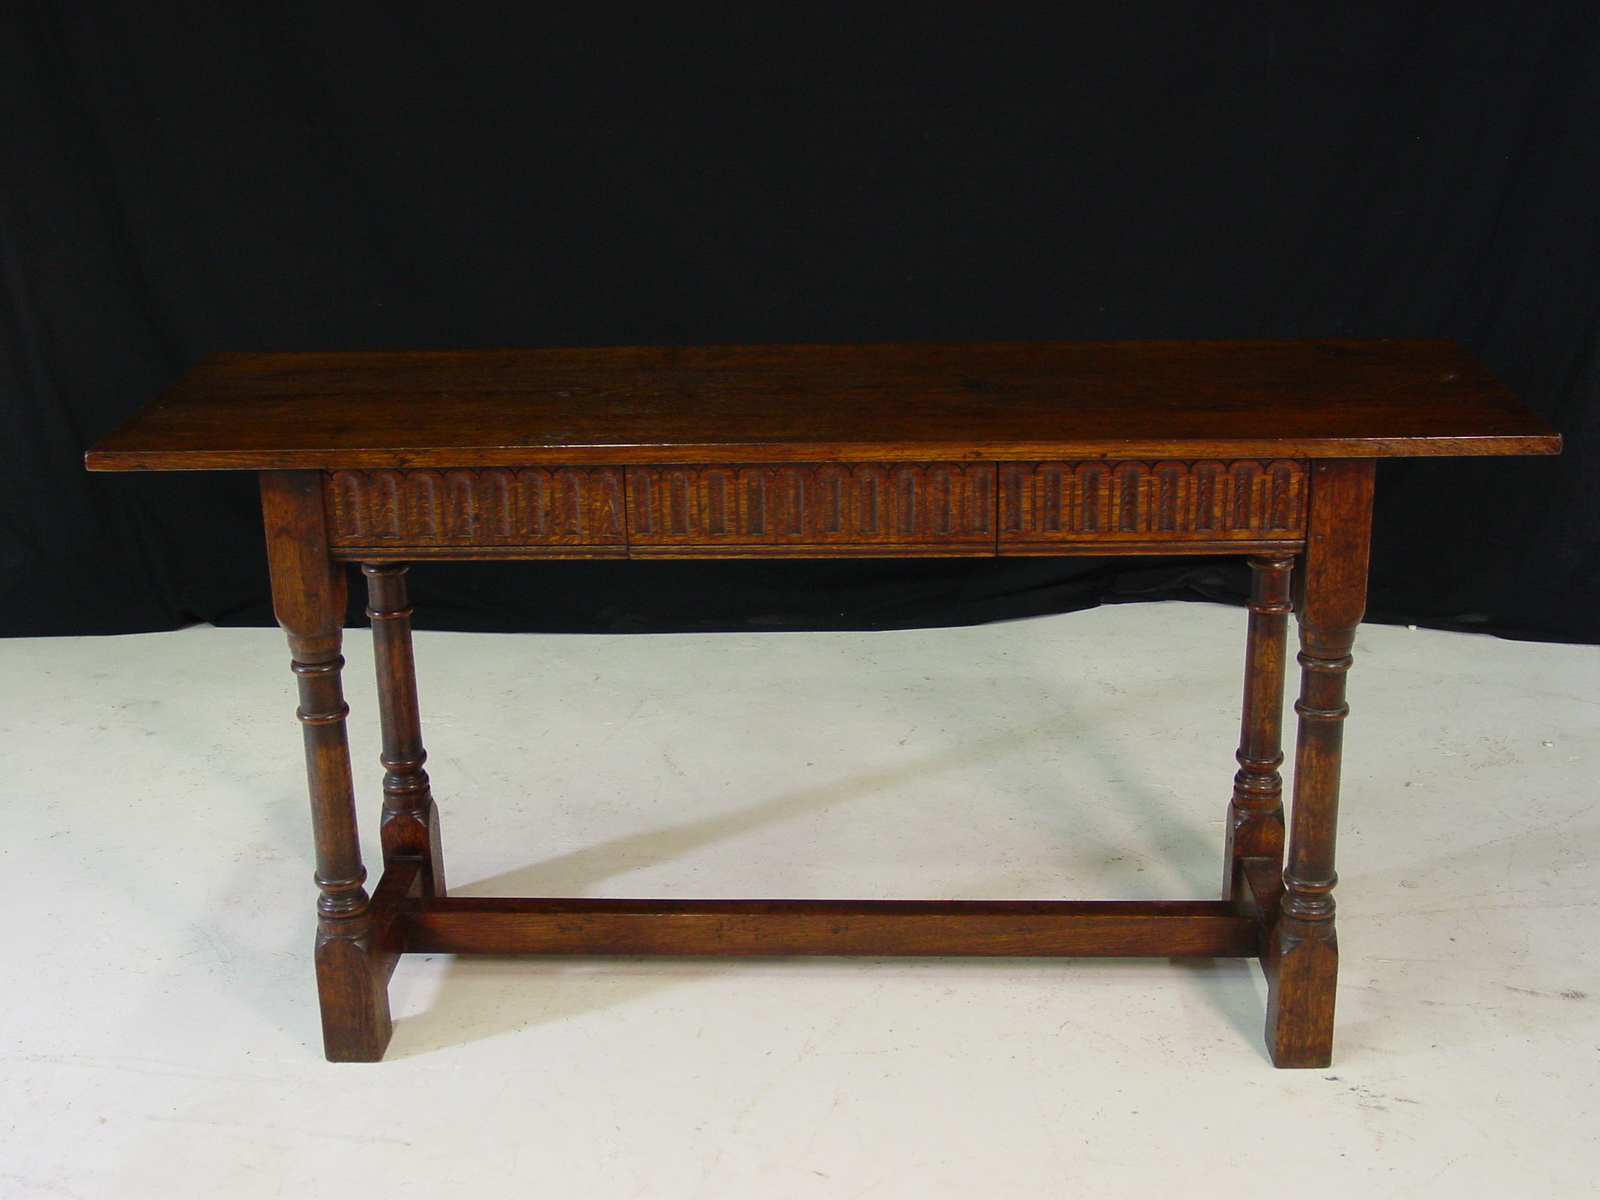 Oak carved apron side table with turned legs